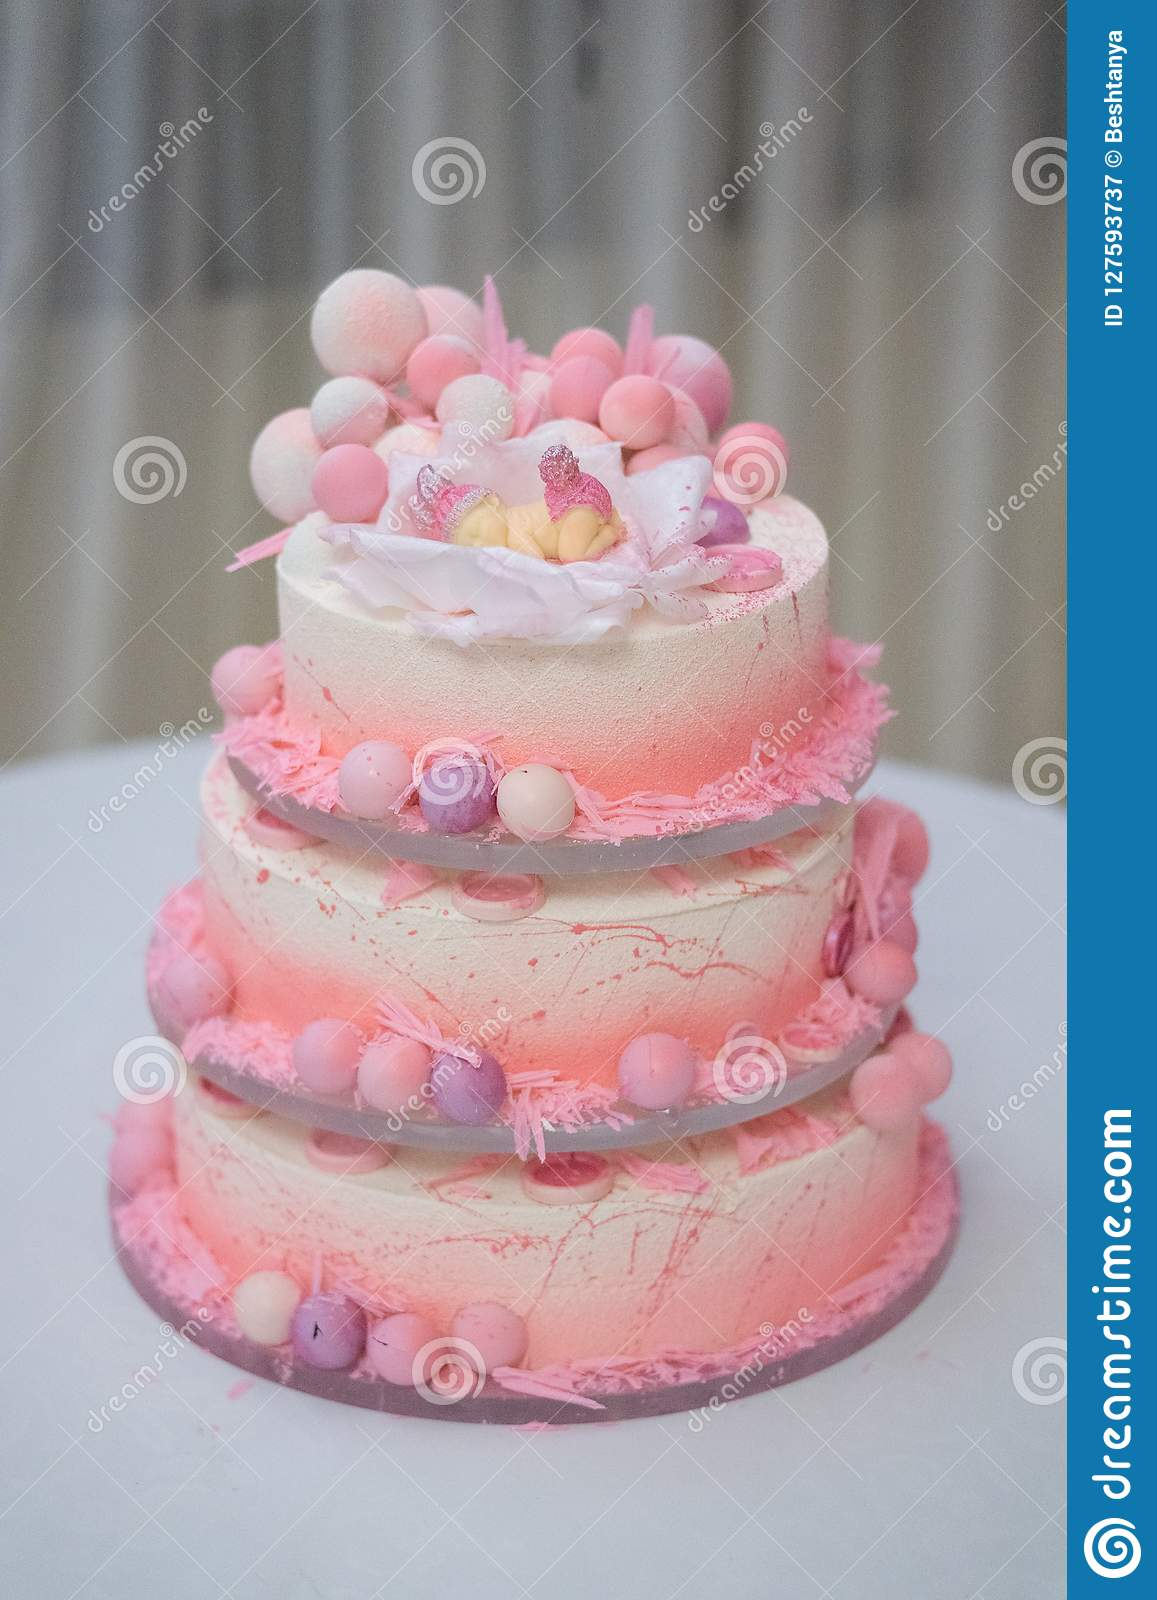 Beautiful Decorated Large Cake From Several Tiers For The First Birthday Of Little Princess